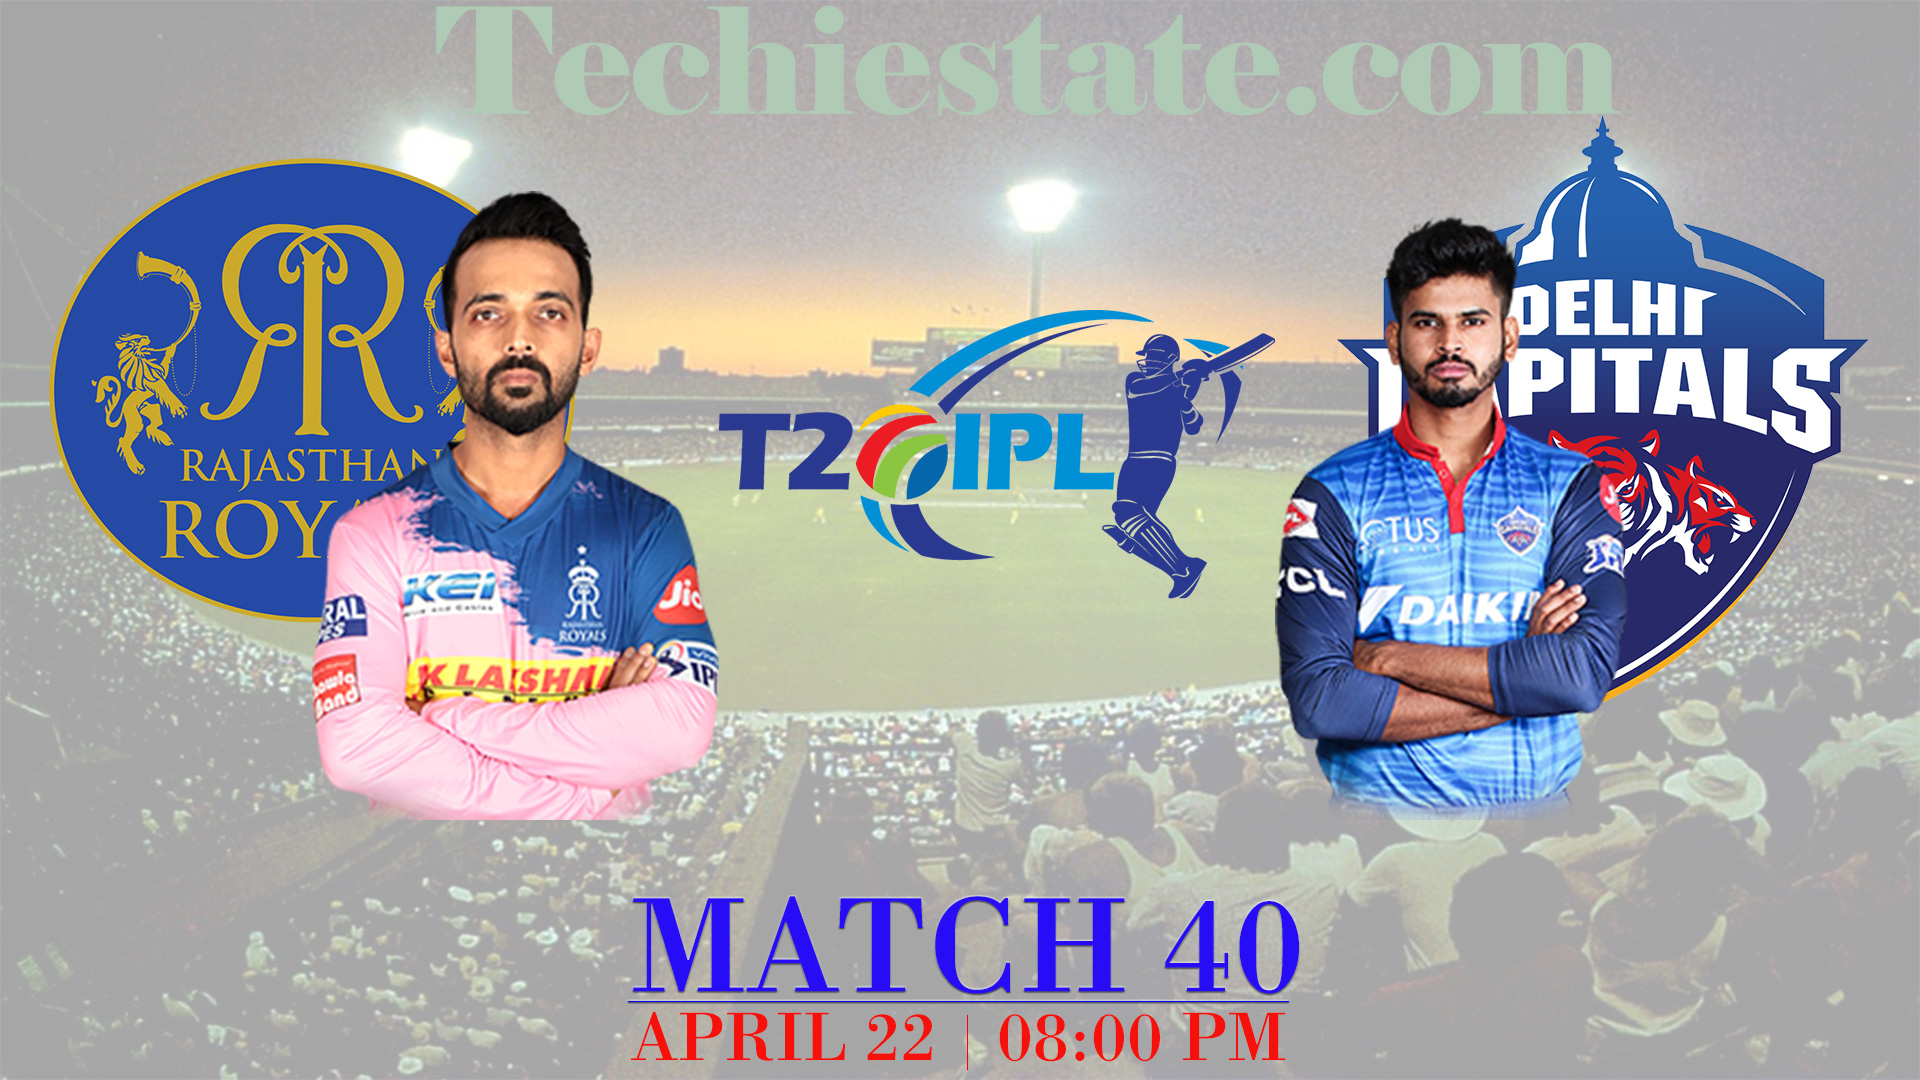 Rajasthan Royals Vs Delhi Capitals Match Prediction, Live Streaming Updates